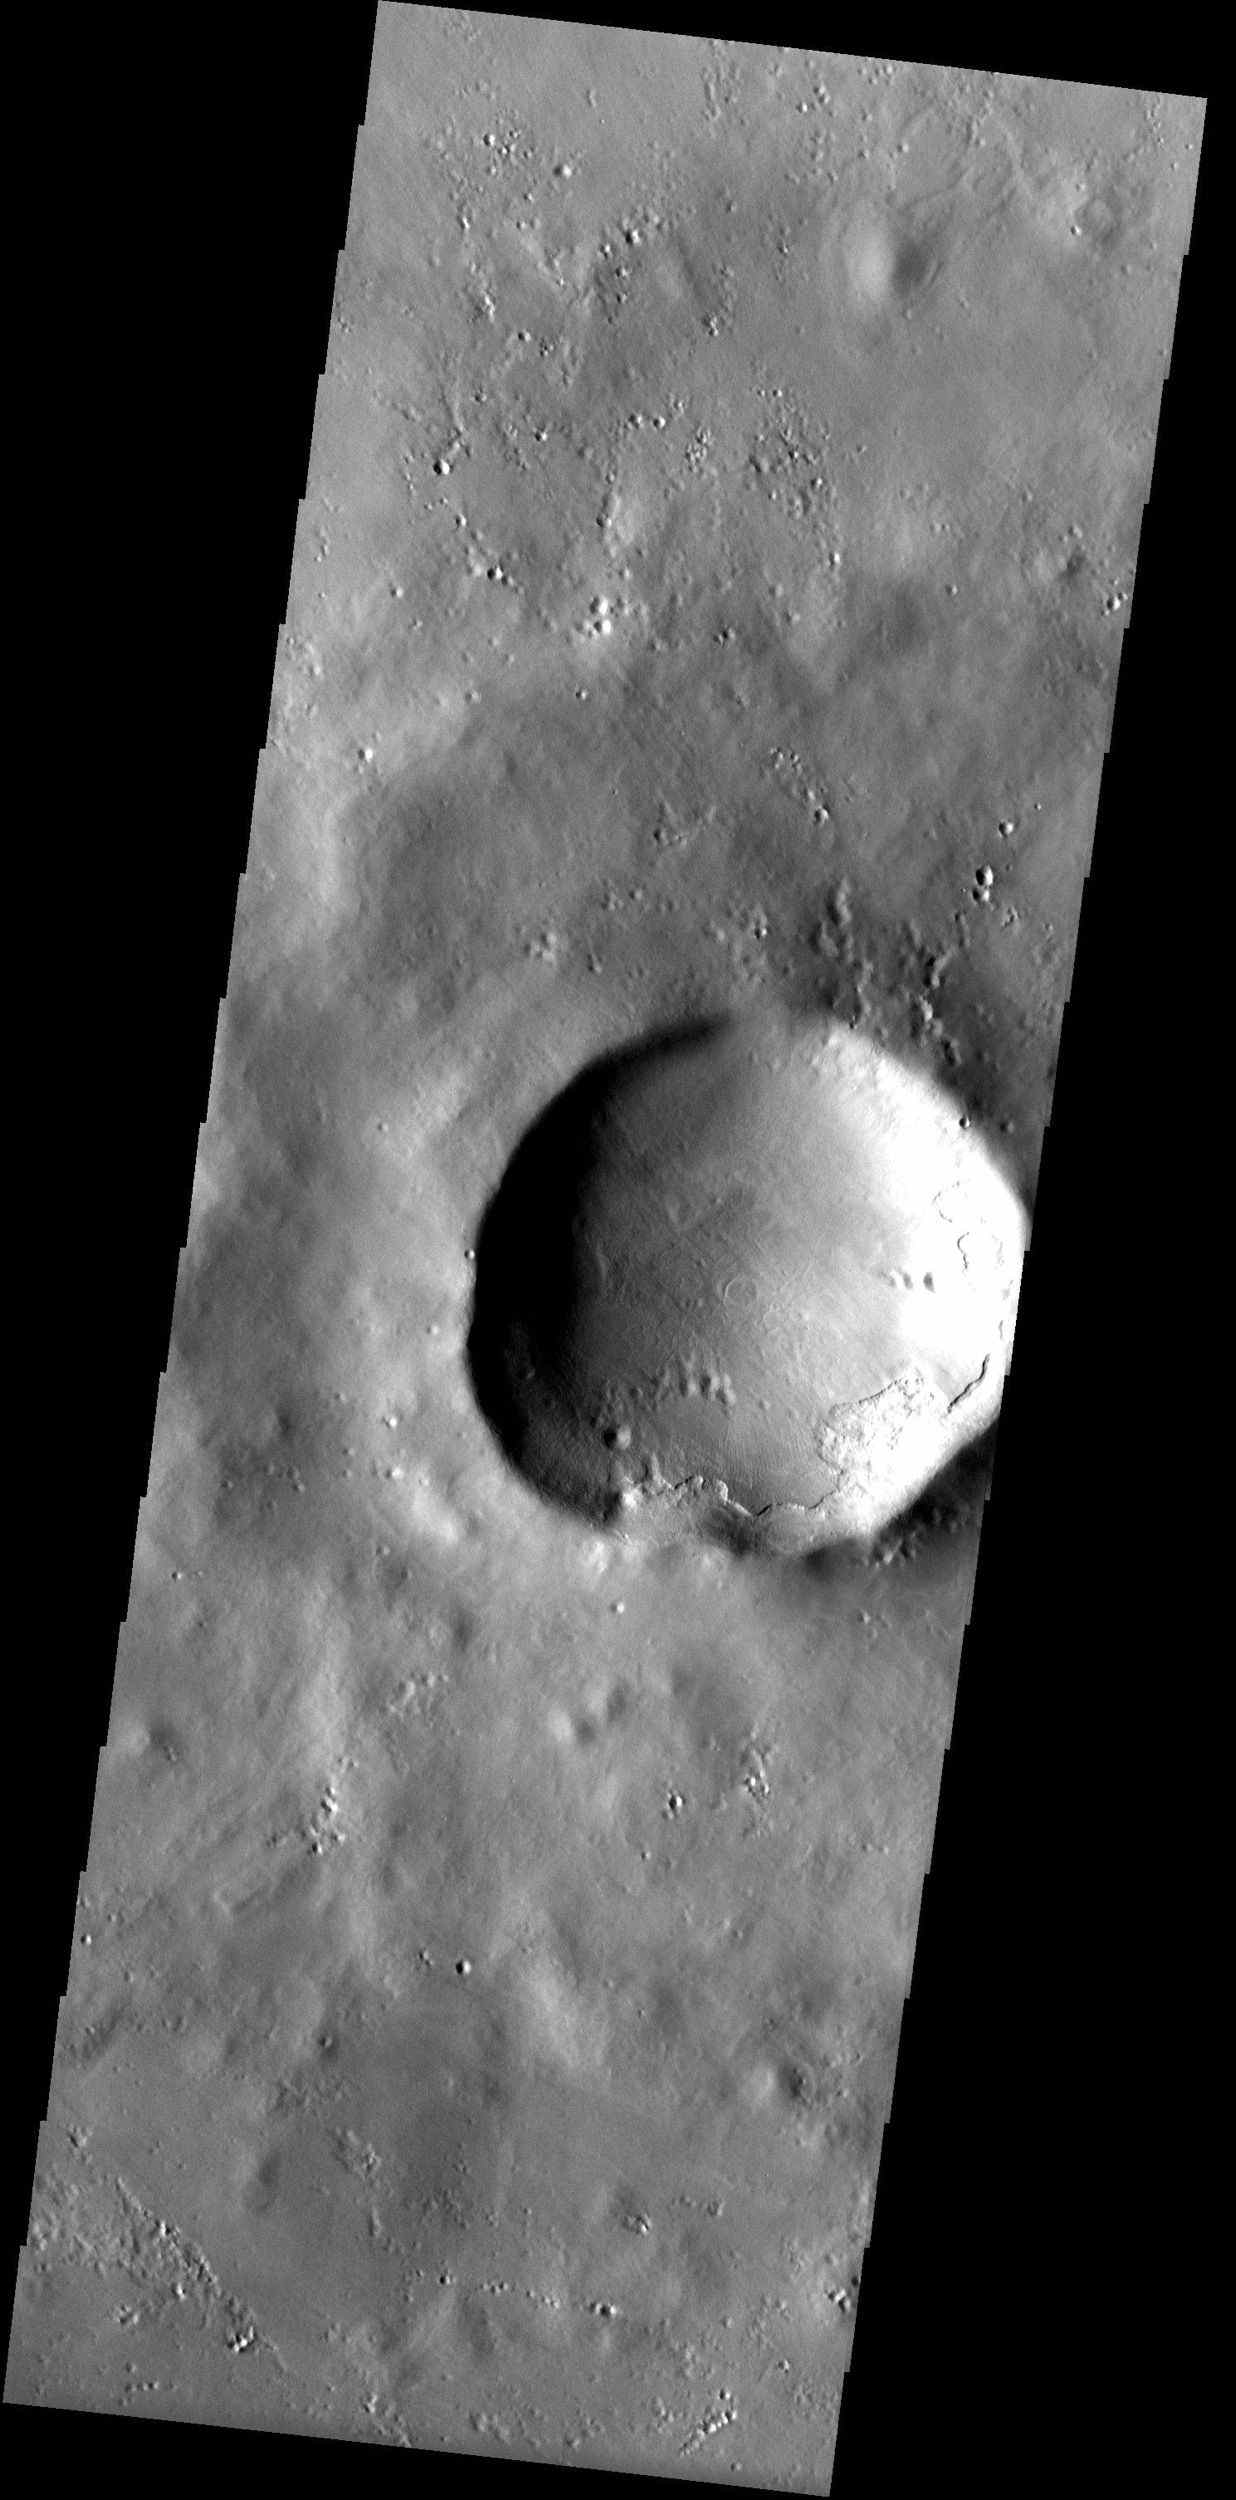 In the high northern latitudes northwest of Alba Patera, a smooth mantle of material that covers the landscape appears chipped away from the rim of a large crater, as observed in this image from NASA's Mars Odyssey spacecraft.